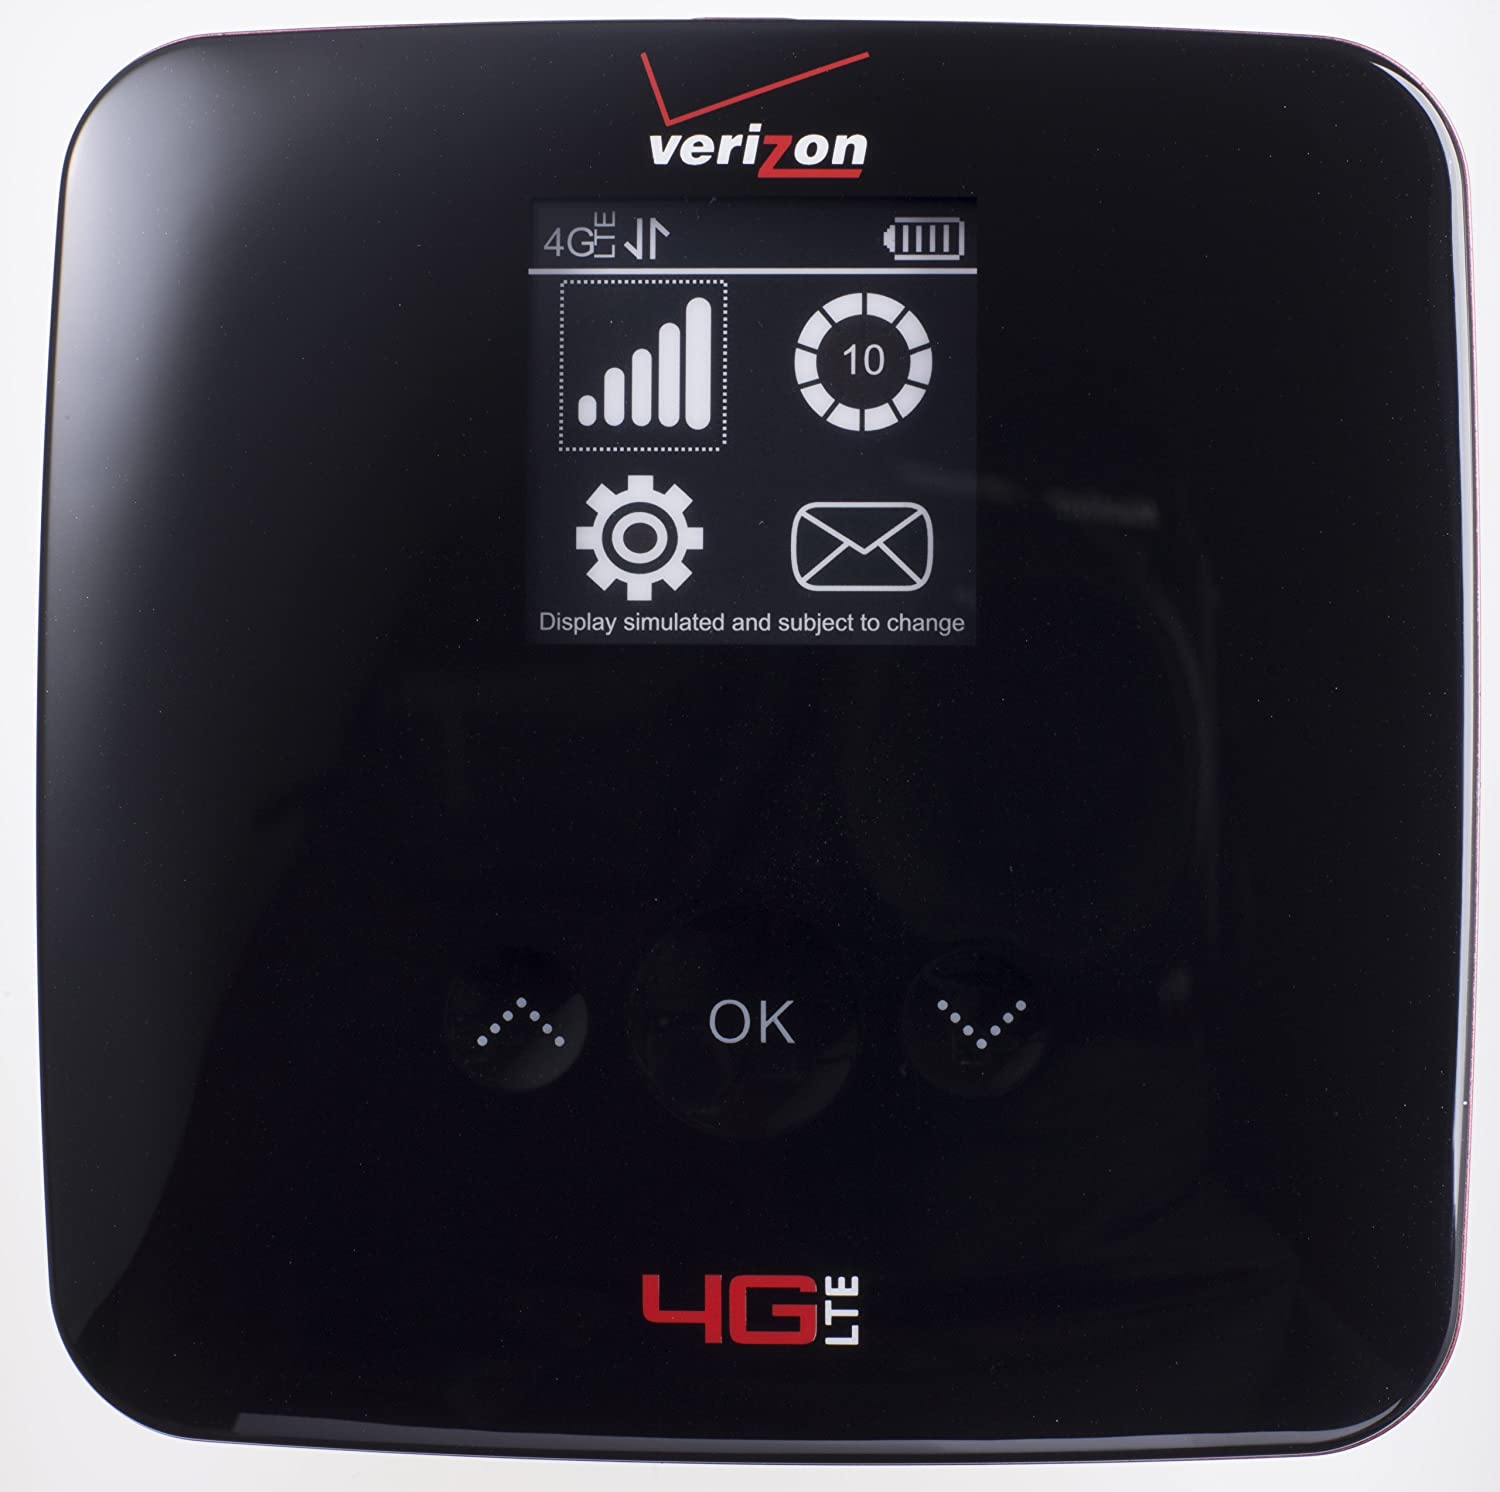 Verizon MiFi 890L Jetpack 4G Mobile Hotspot (Verizon Wireless)